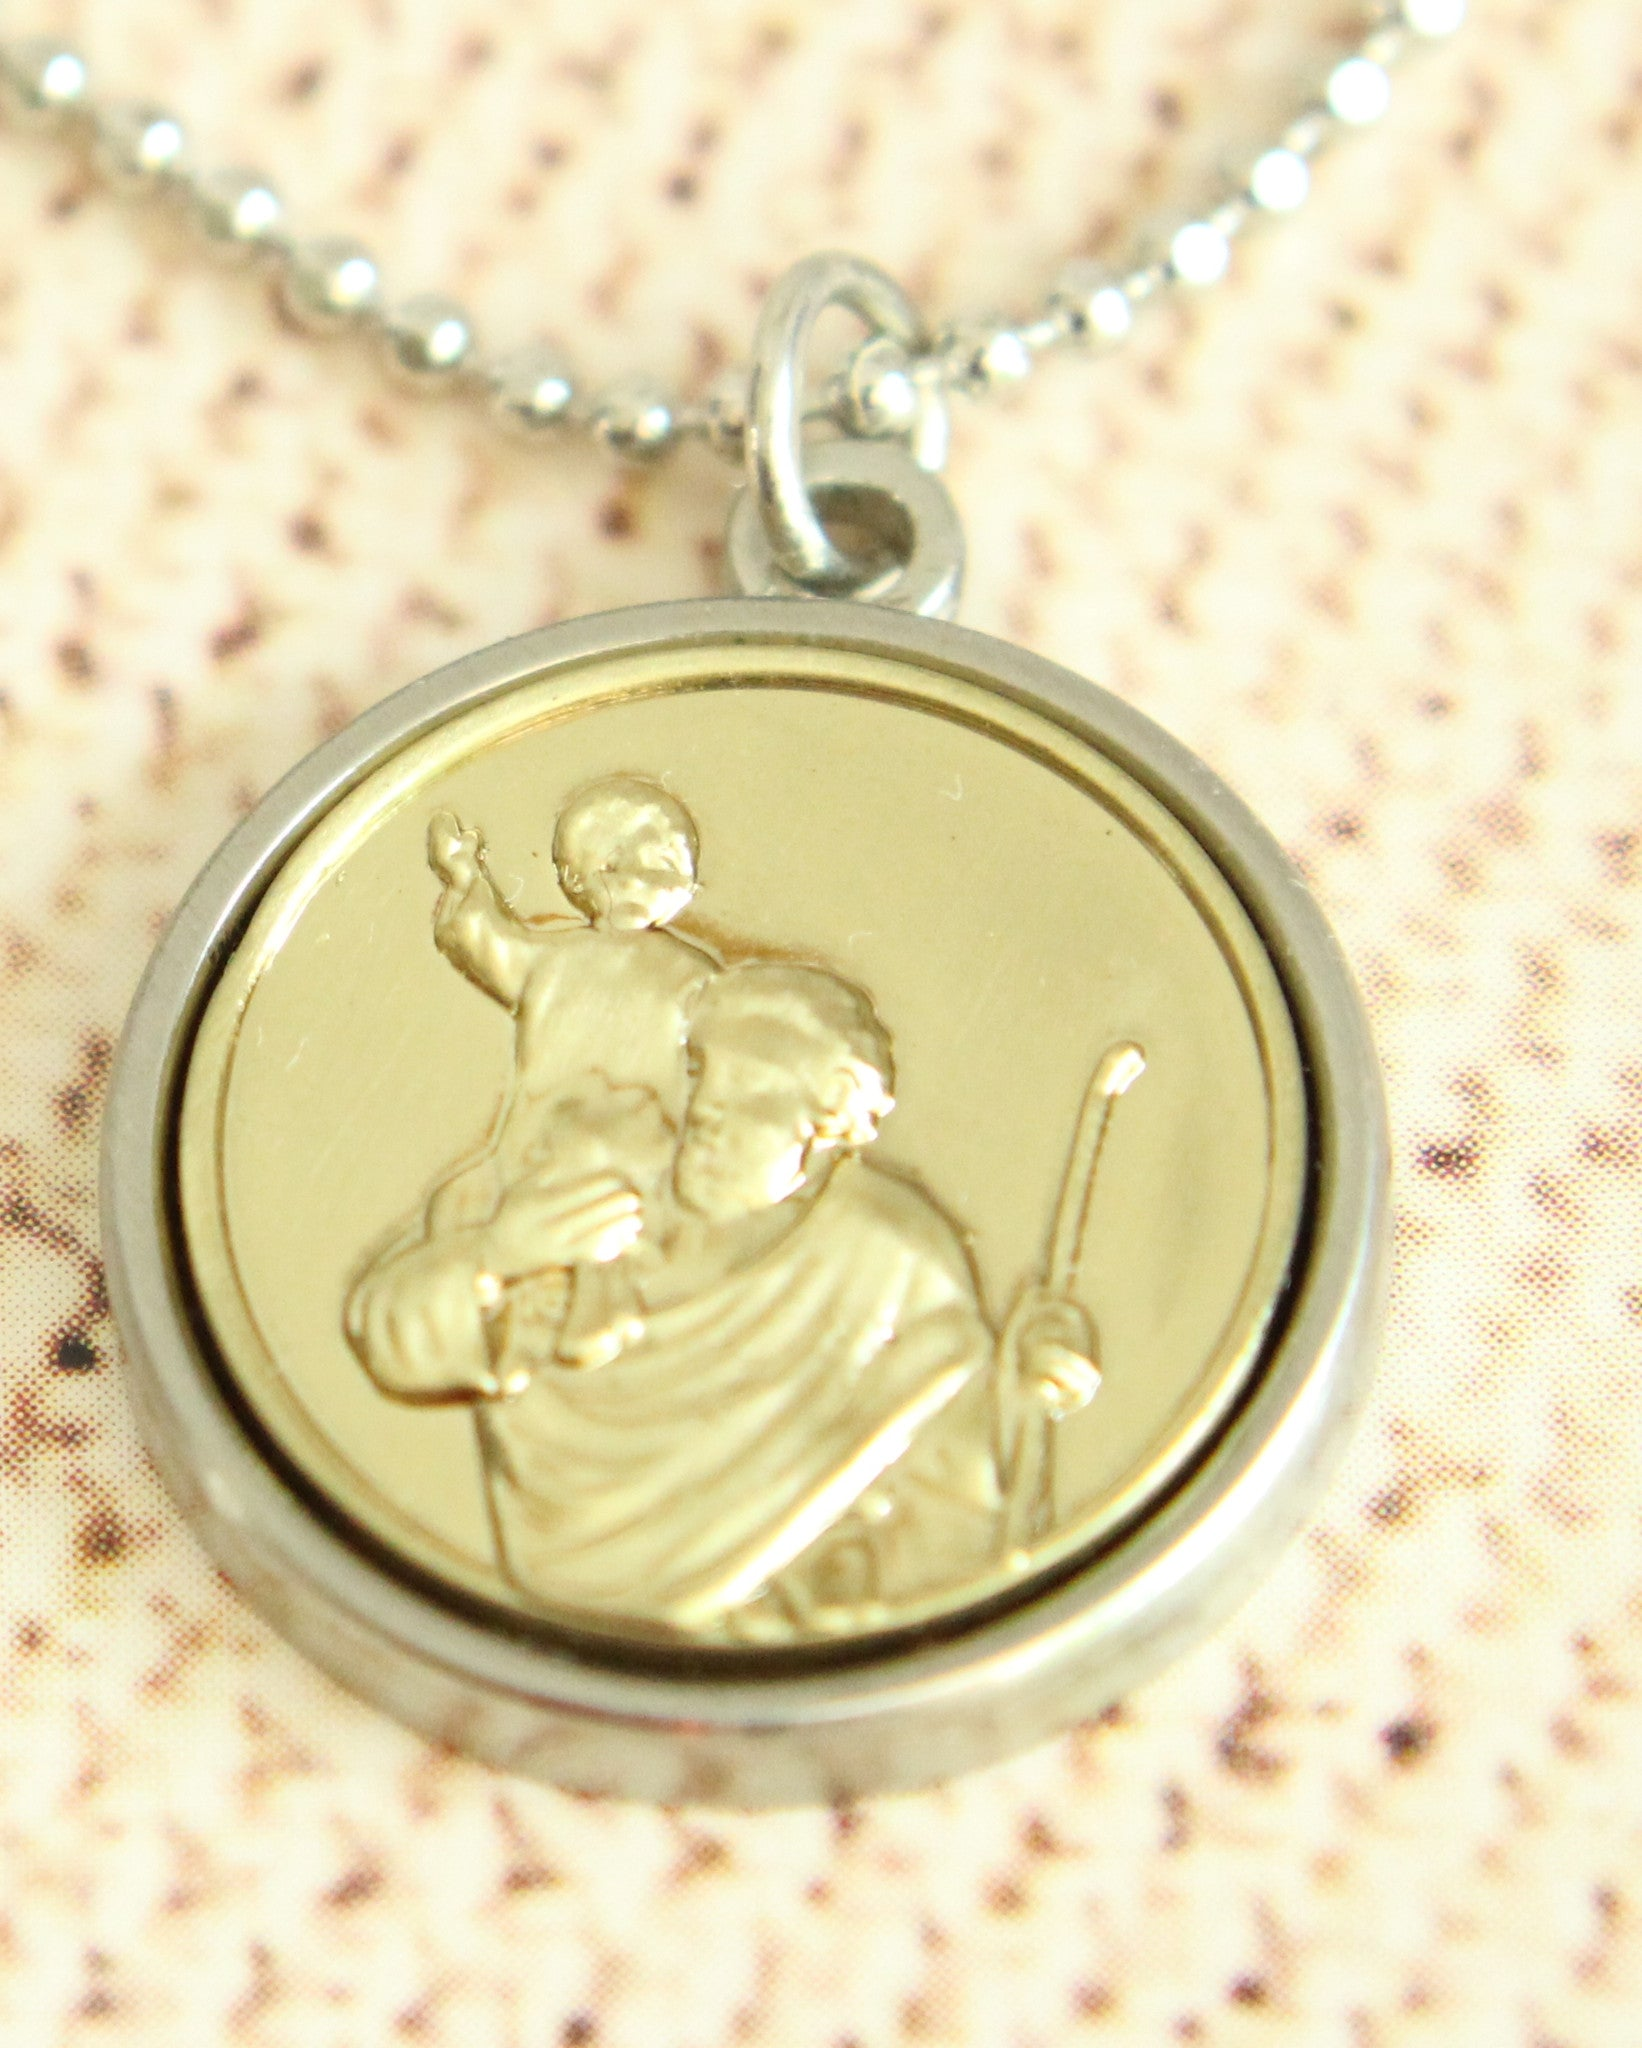 medal findings medallion selected saint christopher